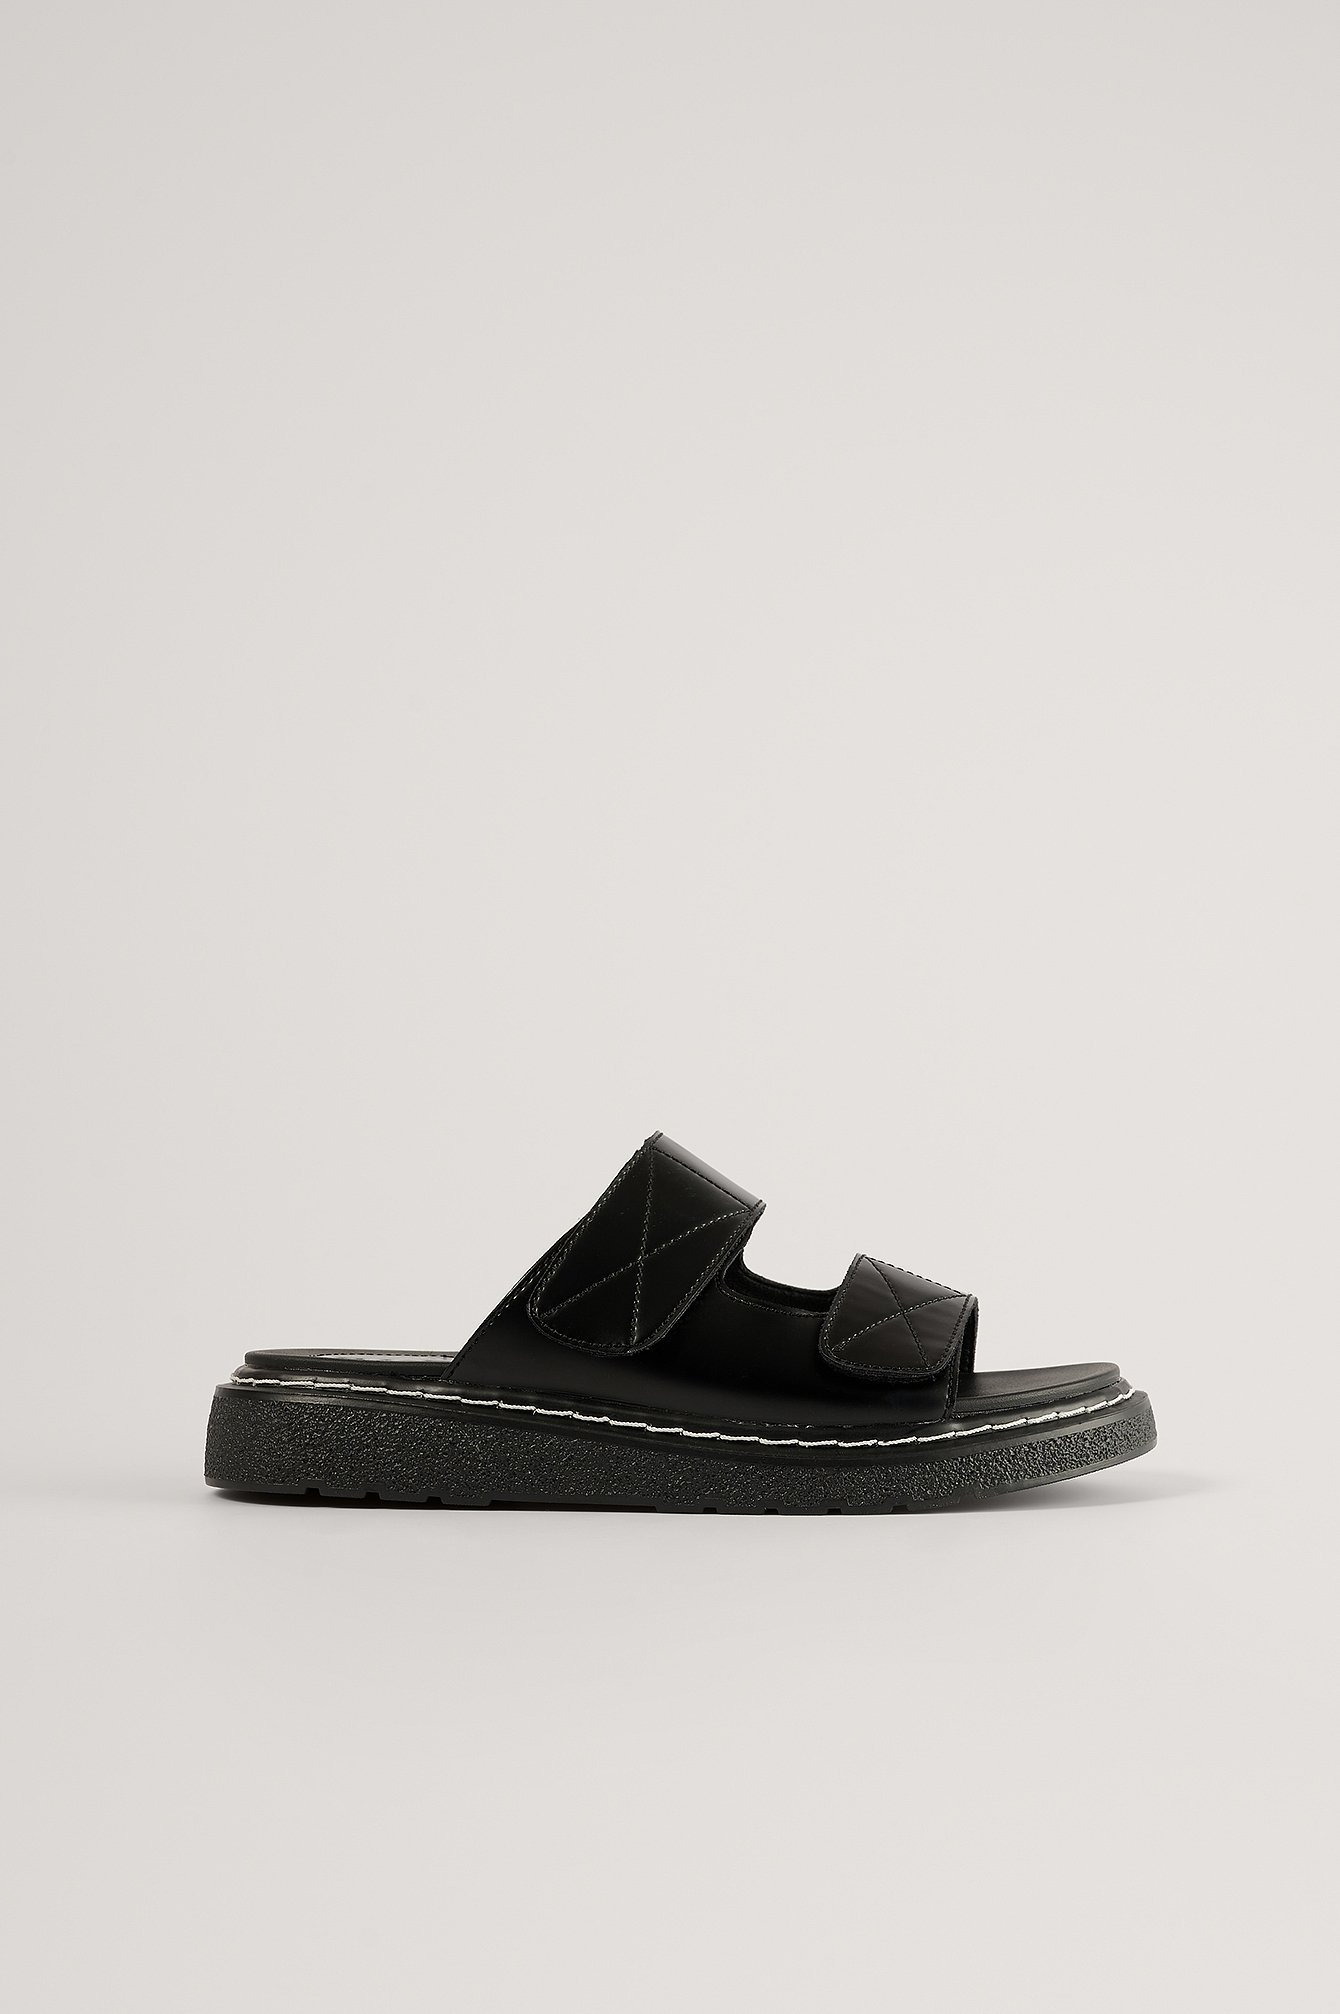 Contrast Stitch Slippers  $47.95